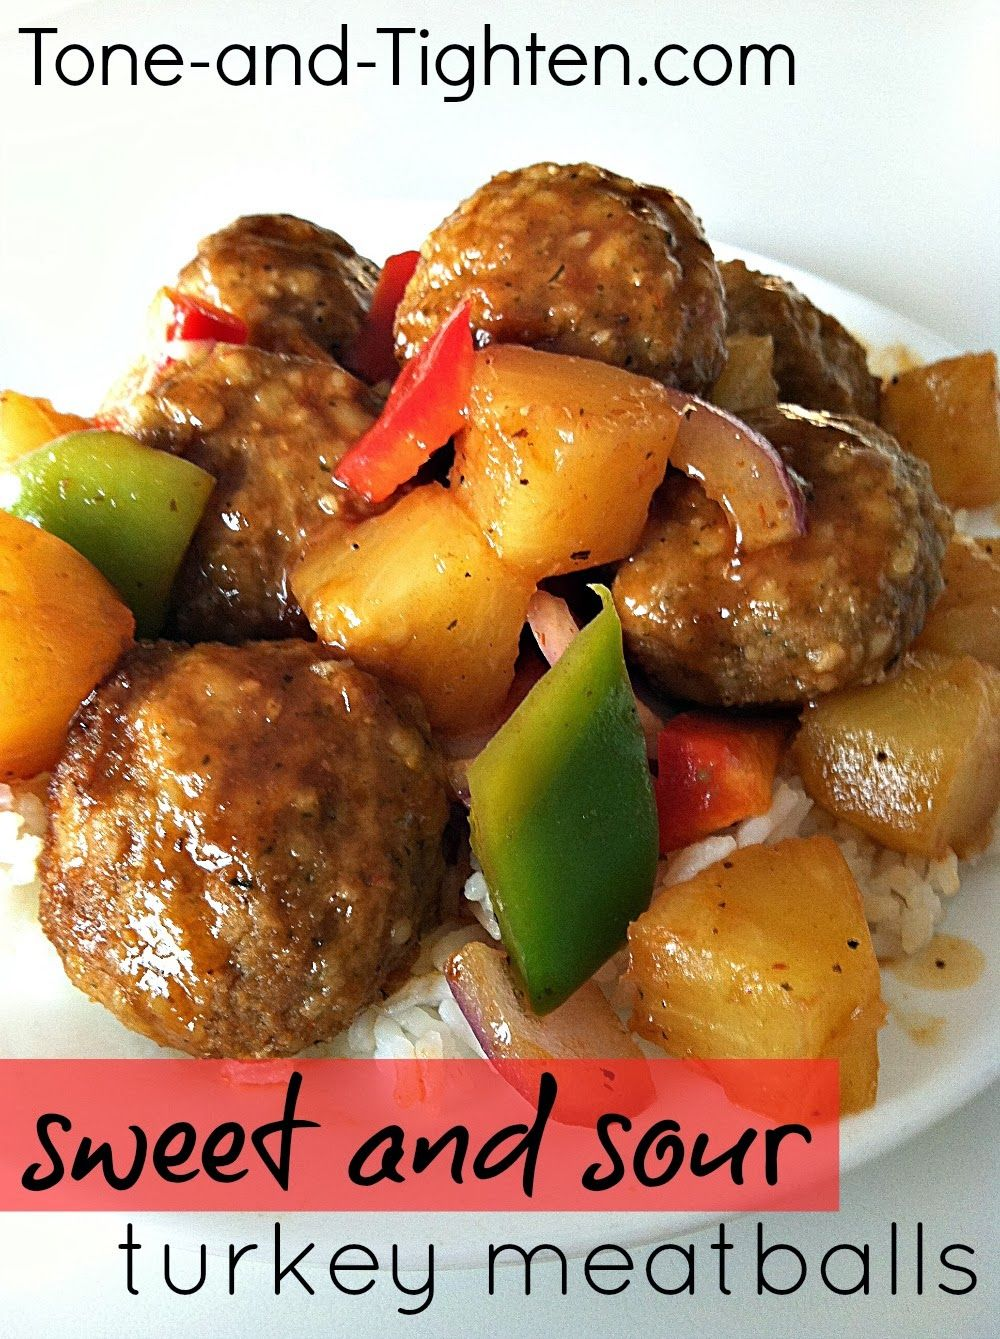 Sweet And Sour Turkey Meatballs Turkey Meatball Recipe Turkey Meatballs Healthy Turkey Meatballs